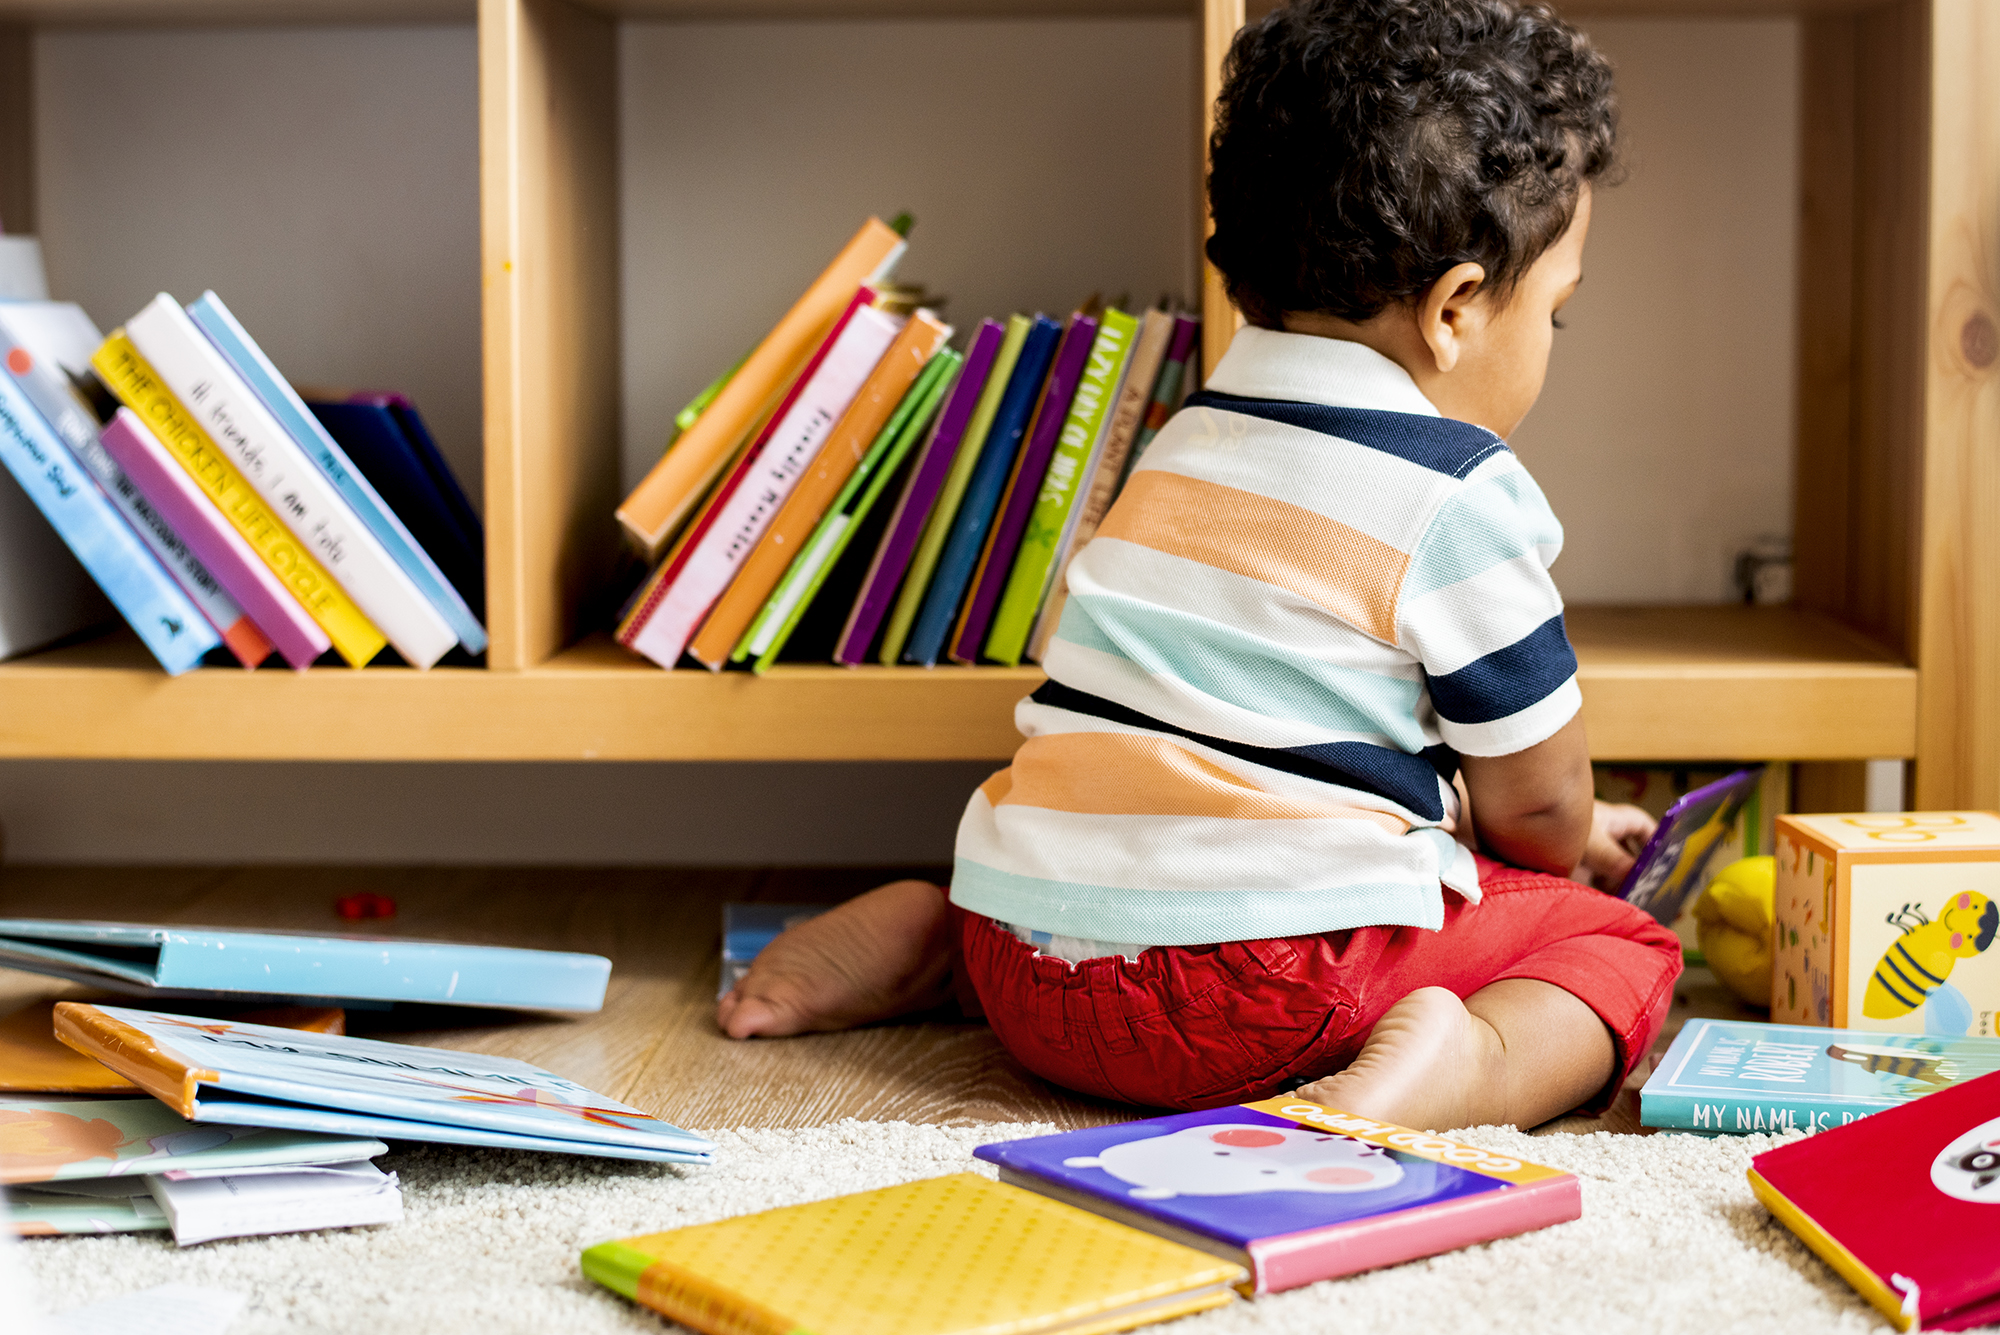 How many books should I read to my toddler a day?